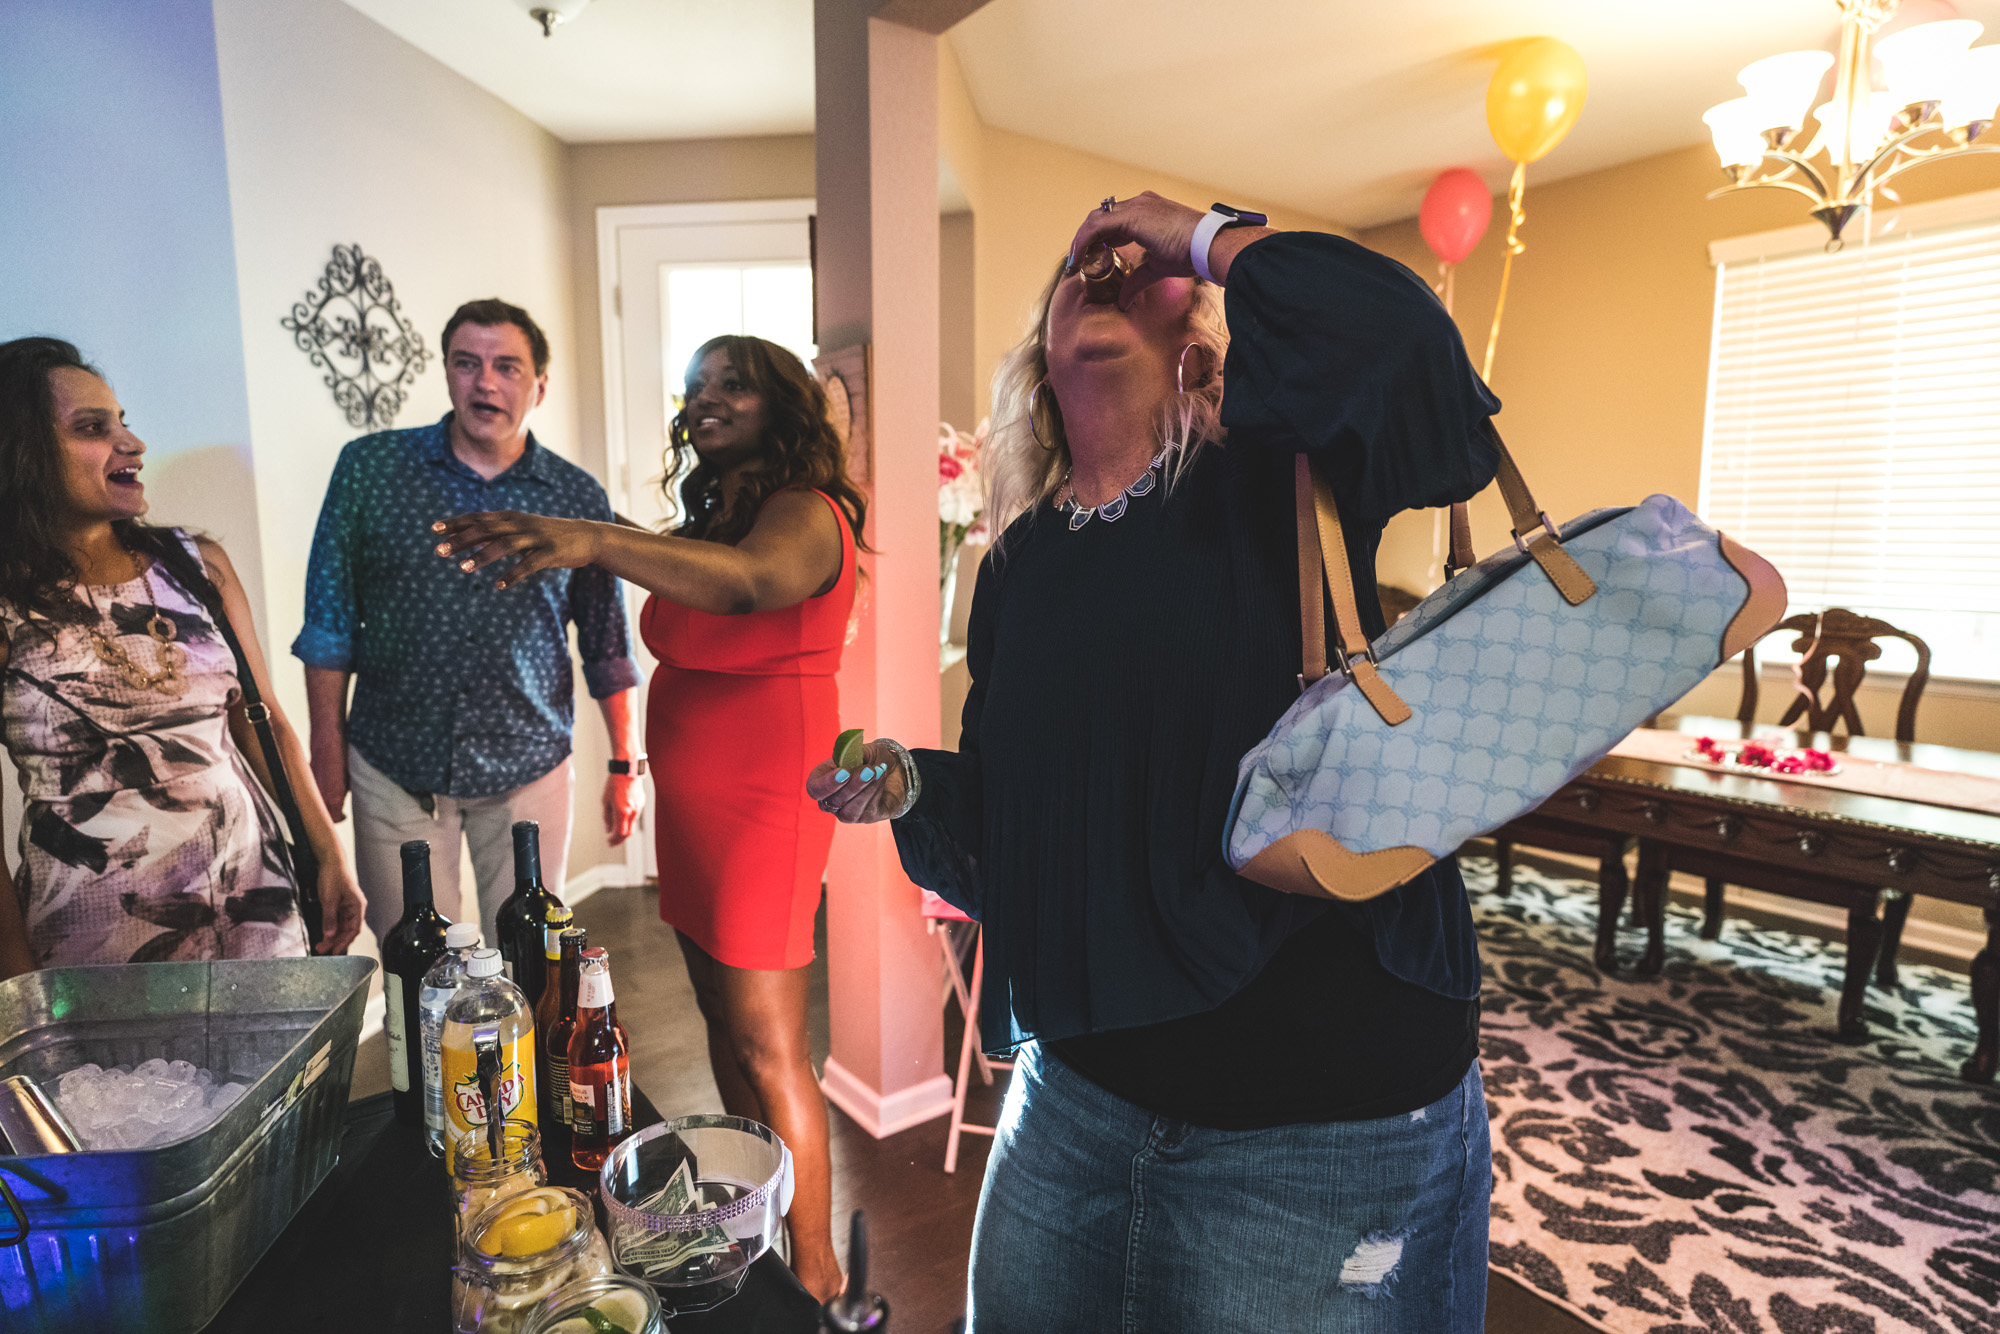 Woman holding a purse takes a tequila shot at a house party in Denver